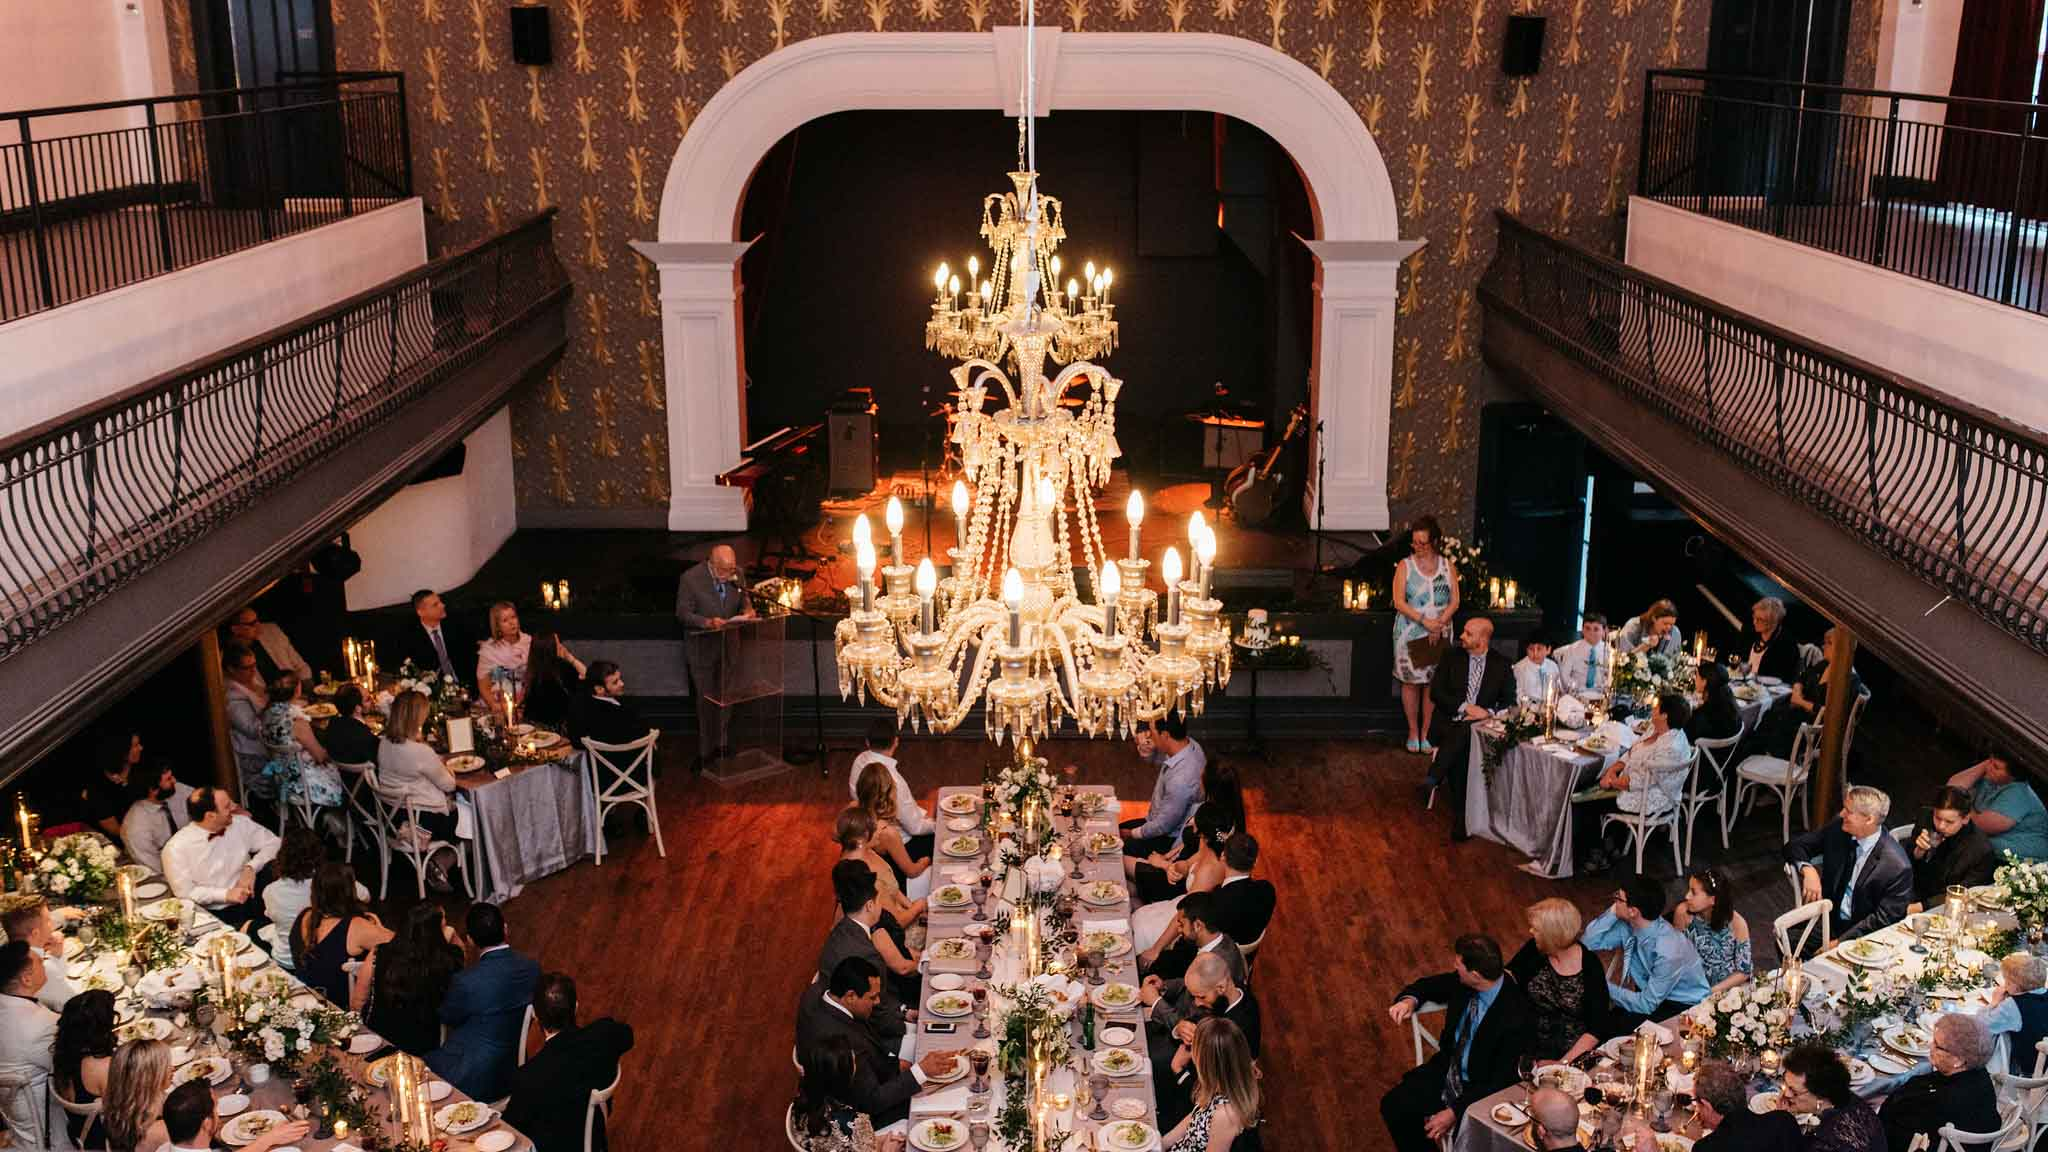 THE GREAT HALL - Photography by : Olive Photography.https://www.thegreathall.ca